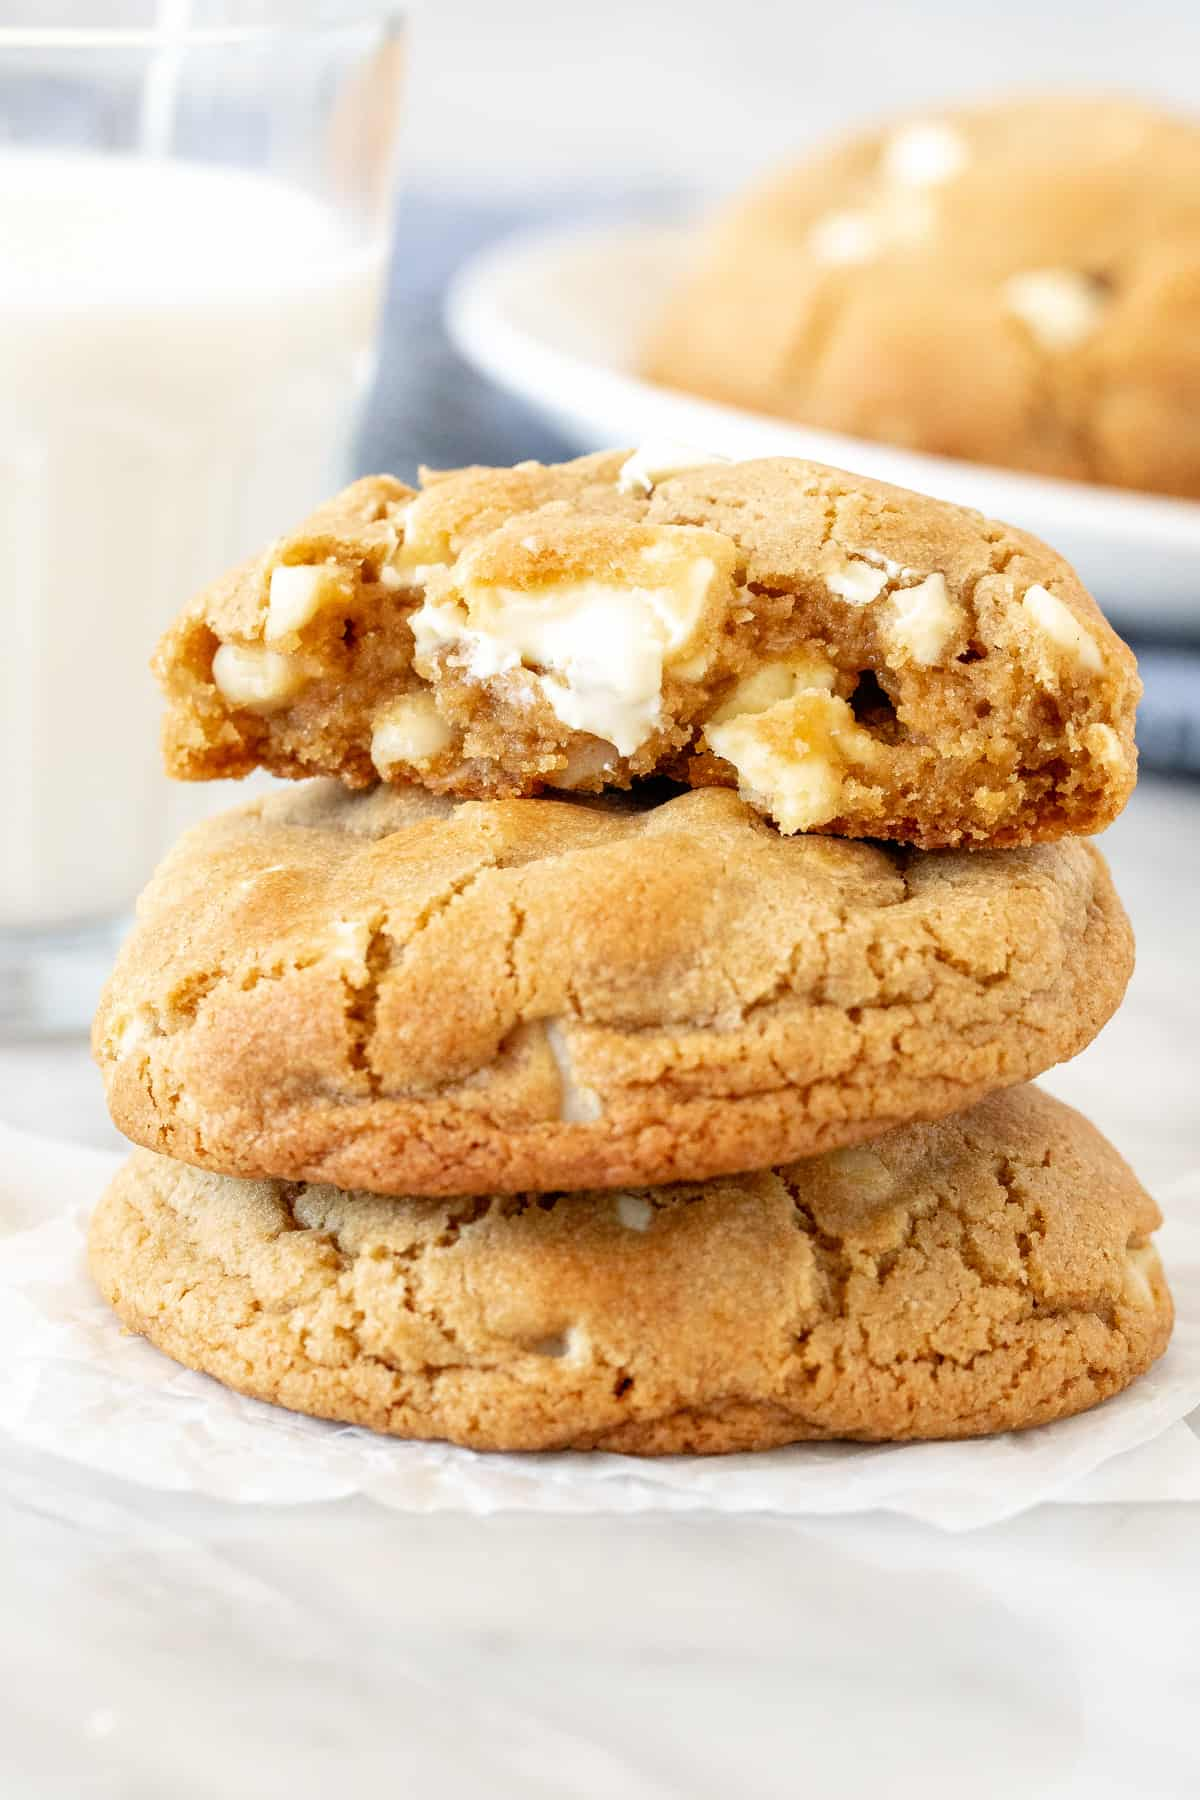 Stack of bakery-style white chocolate macadamia cookies with top cookie broken in half.